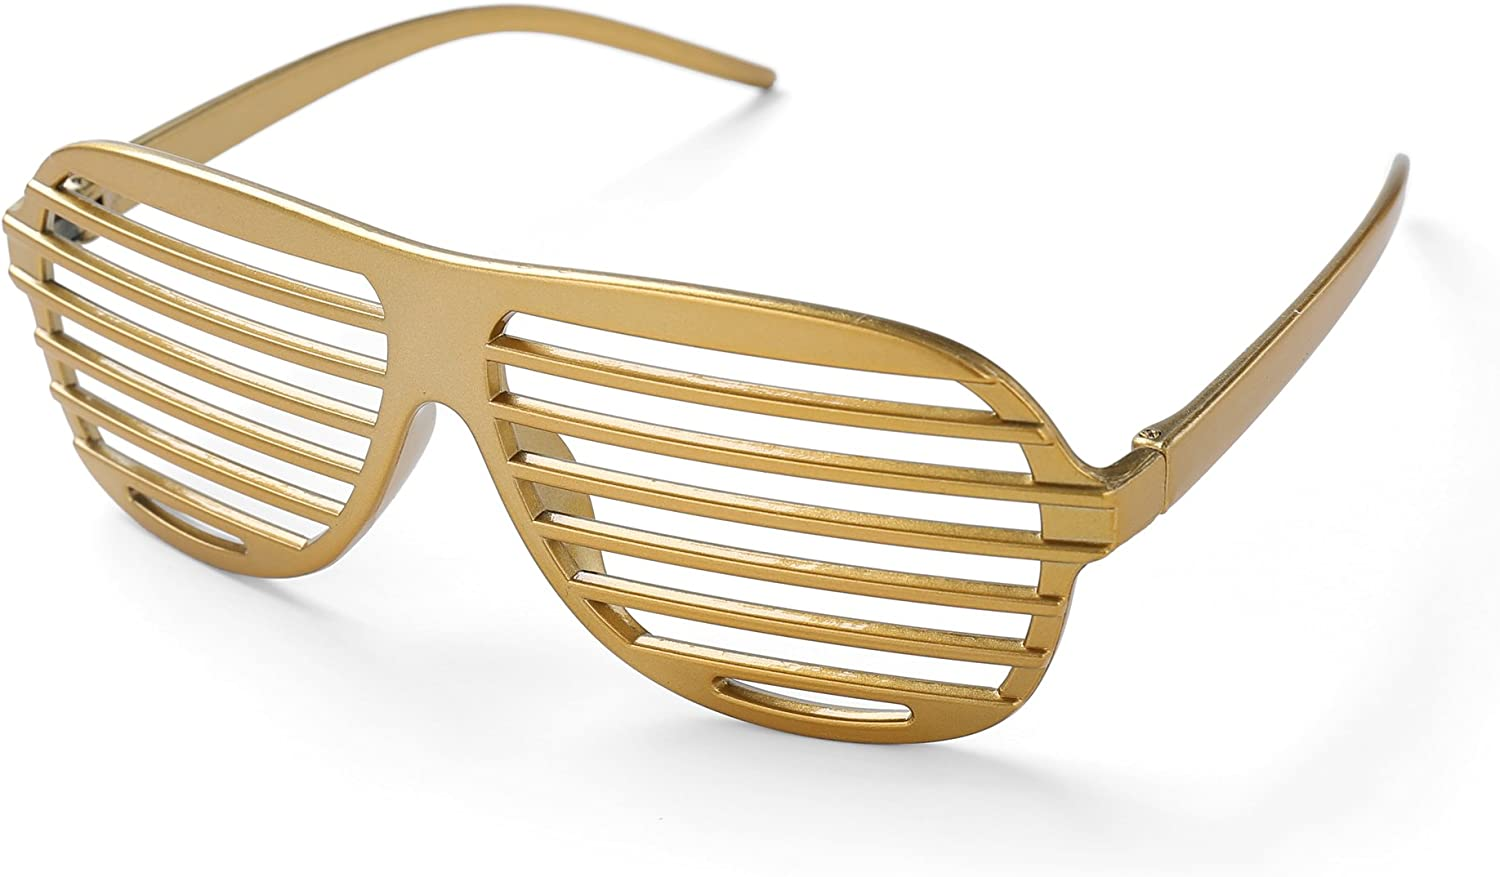 Gold Shutter Shades Fun Novelty Plastic Party Sunglasses Pack of 3